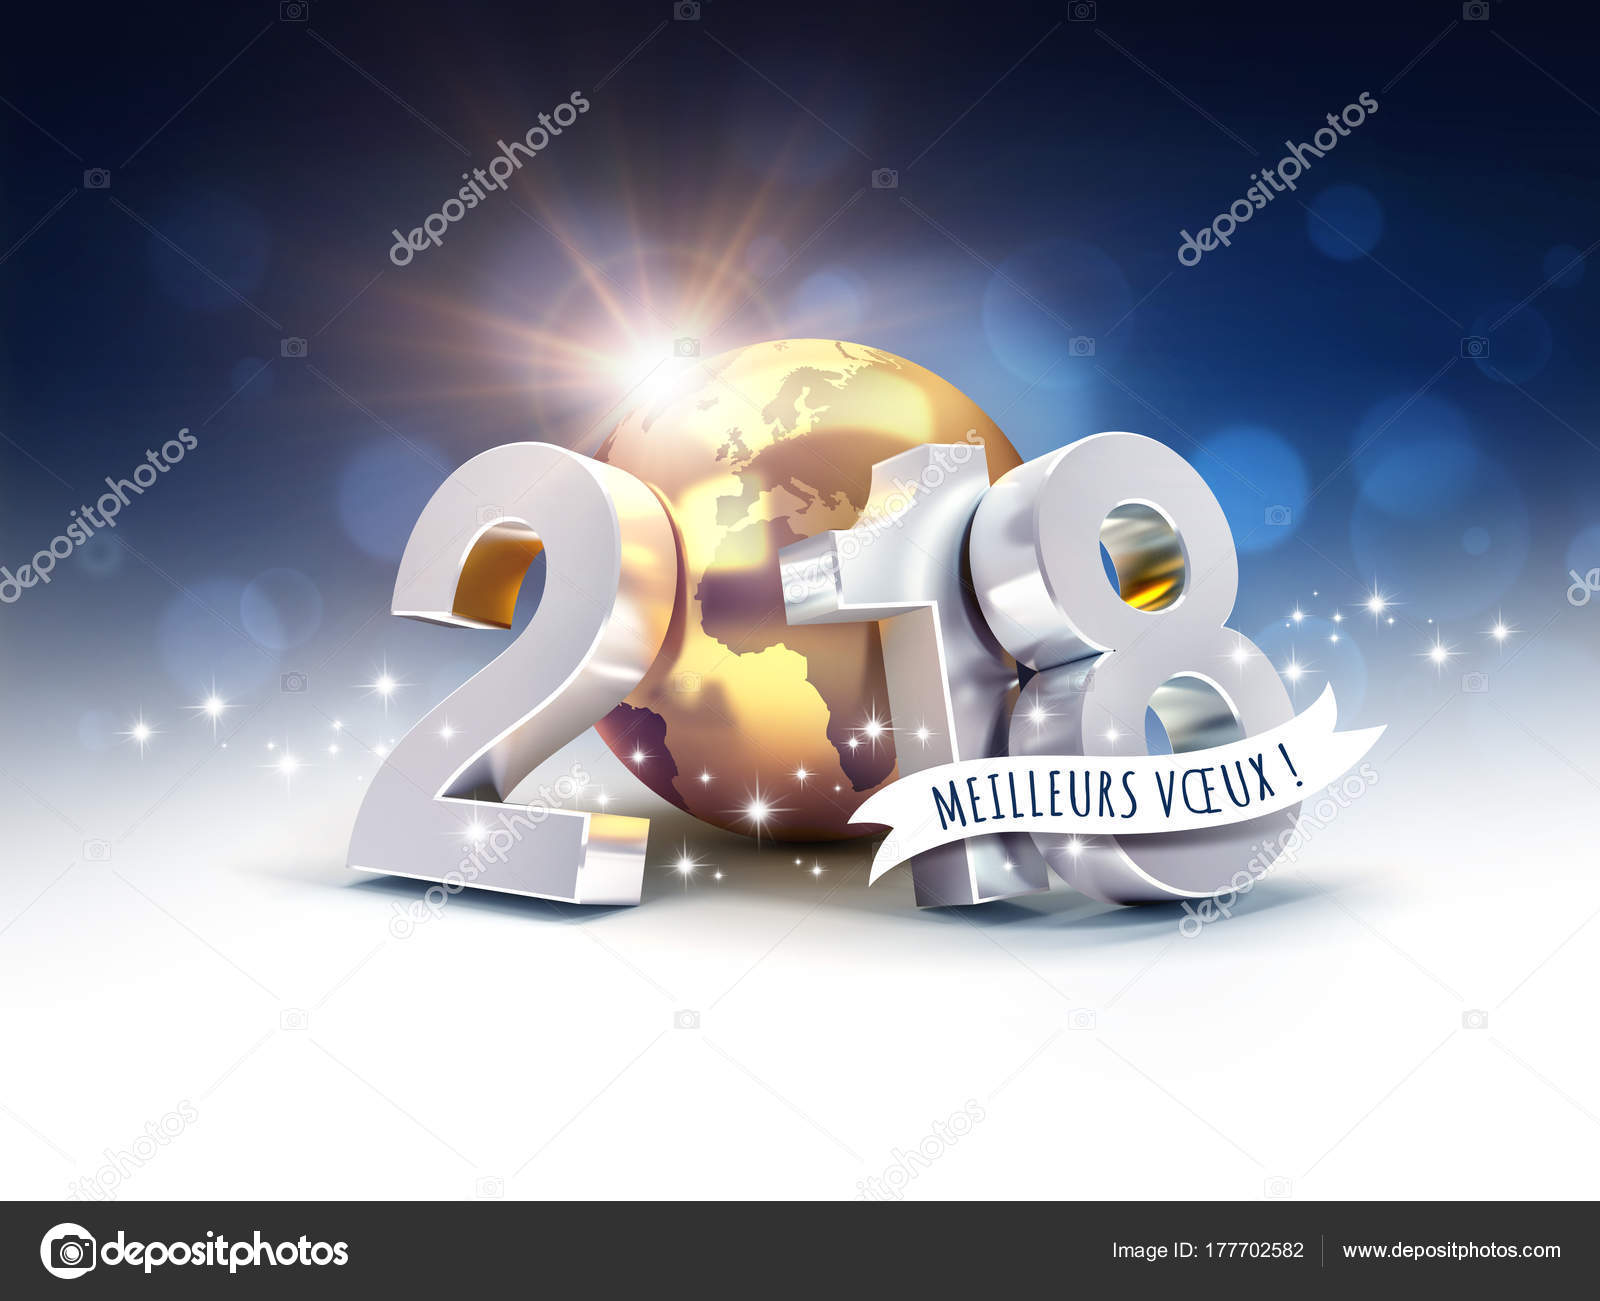 New Year 2018 Greeting Card In French Stock Photo Titoonz 177702582